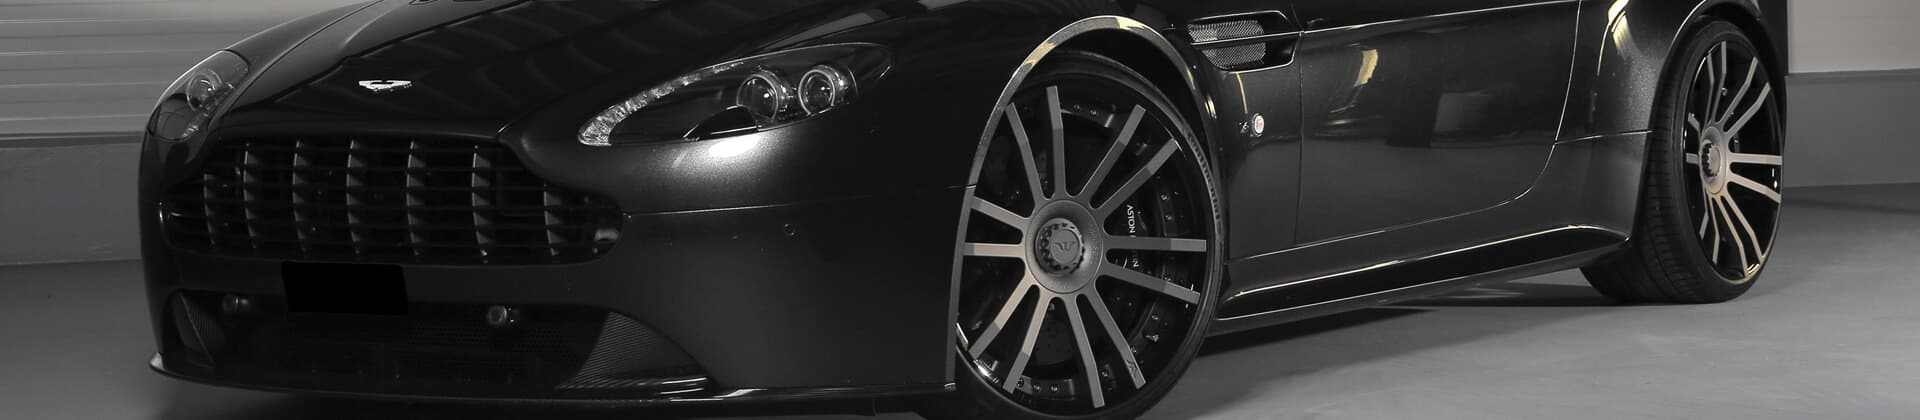 Aston Martin Vantage wheels